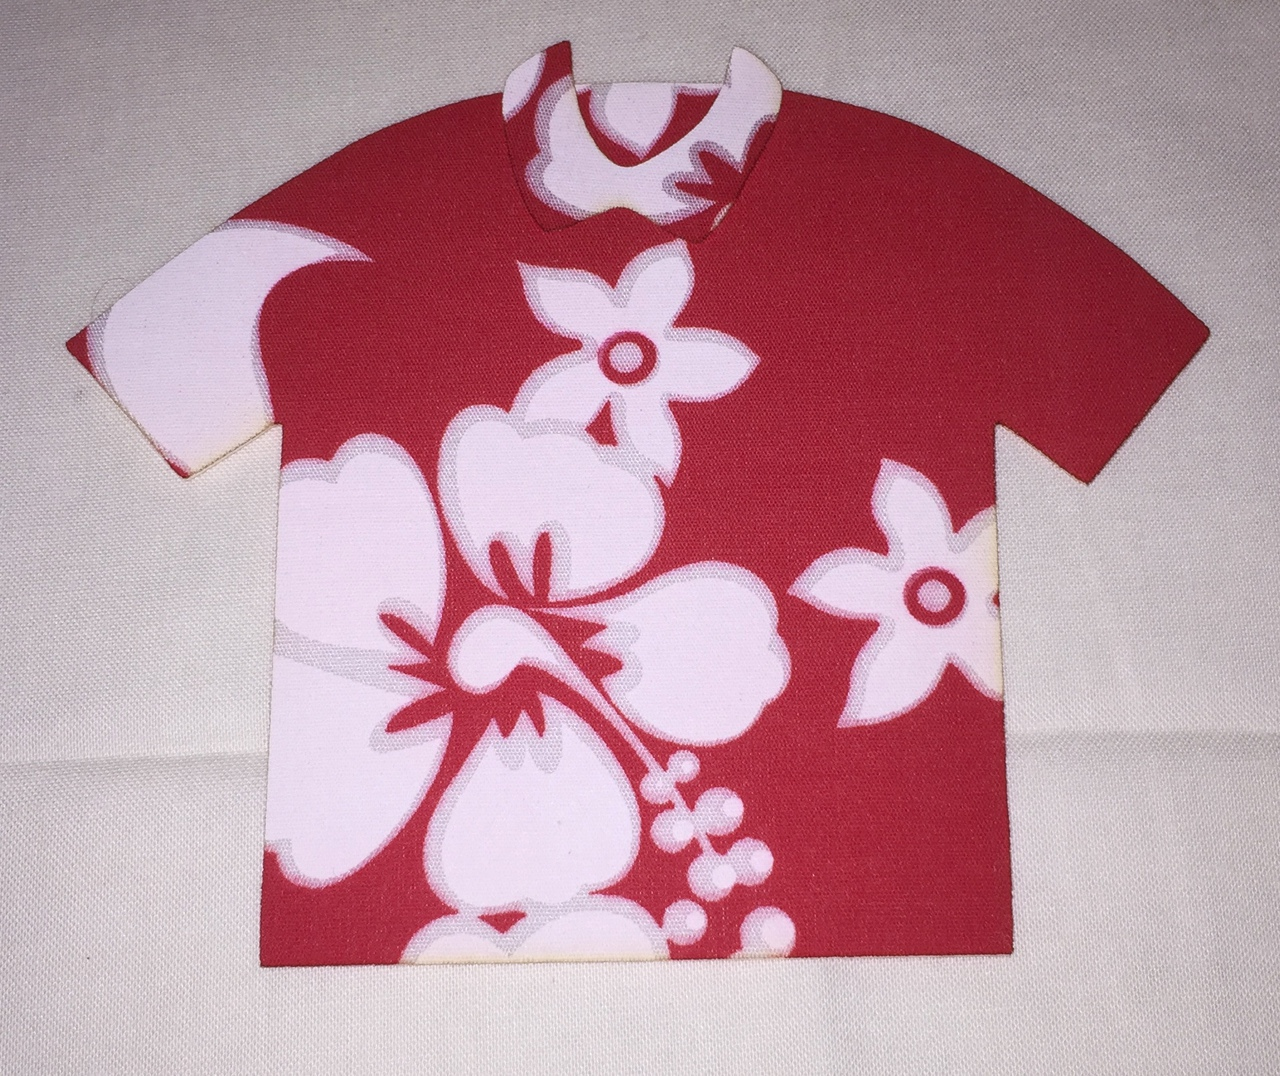 6in. Hawaiian Shirt Laser Cut Appliques.